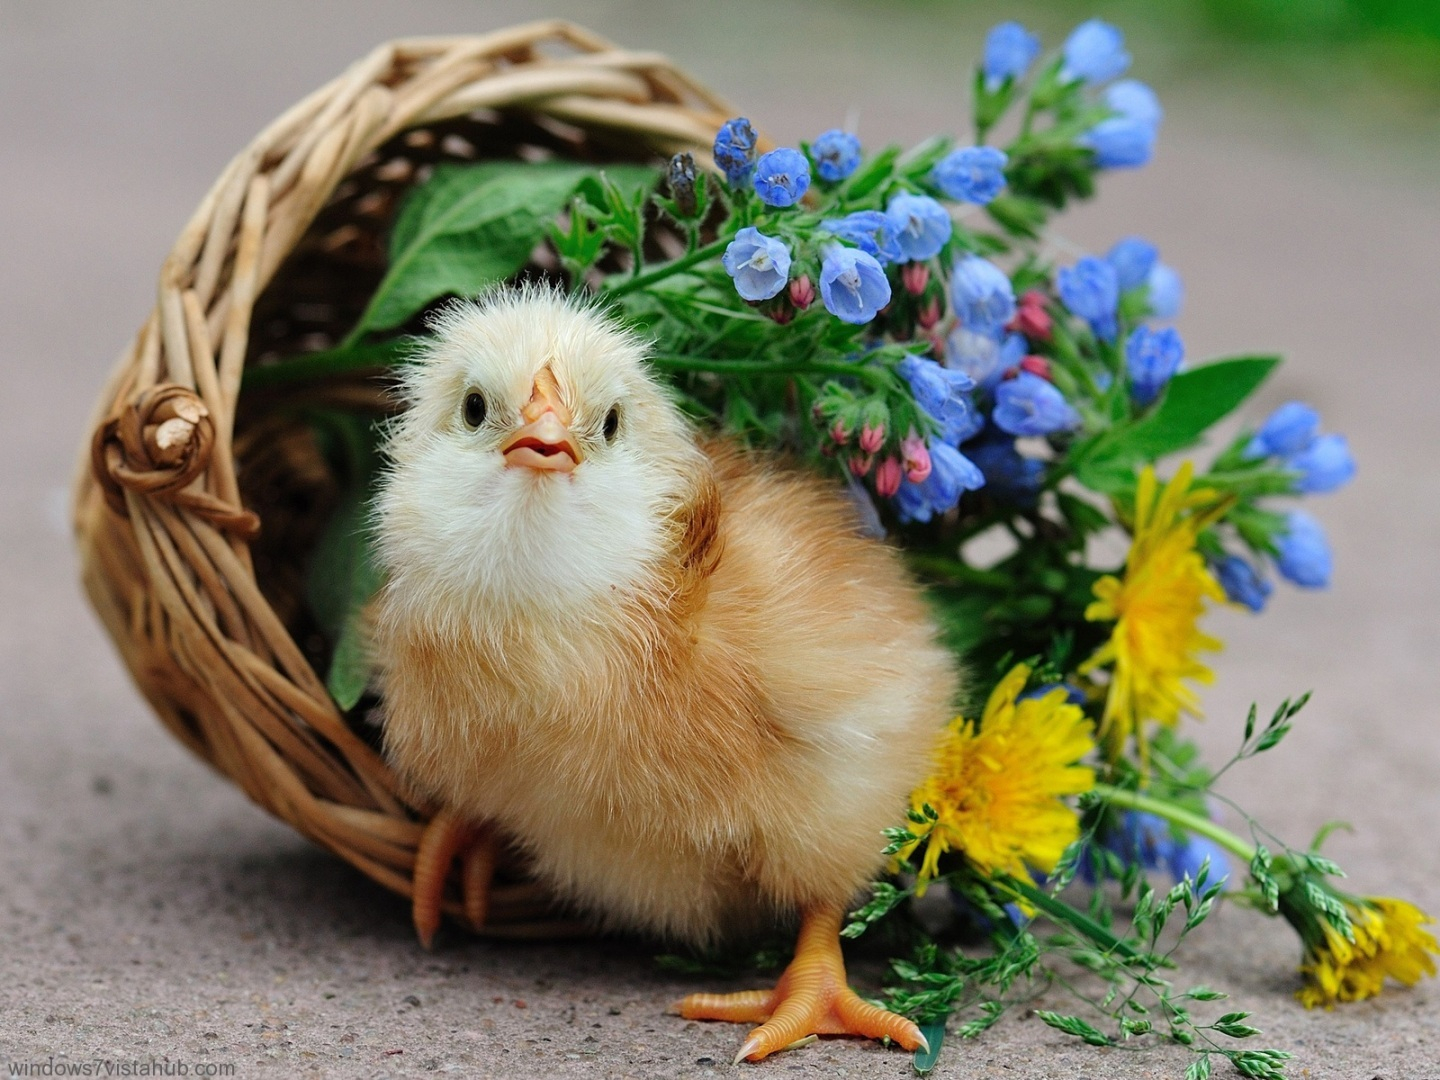 Download Cute Birds Wallpaper Hd For Mobile 342660 Hd Wallpaper Backgrounds Download